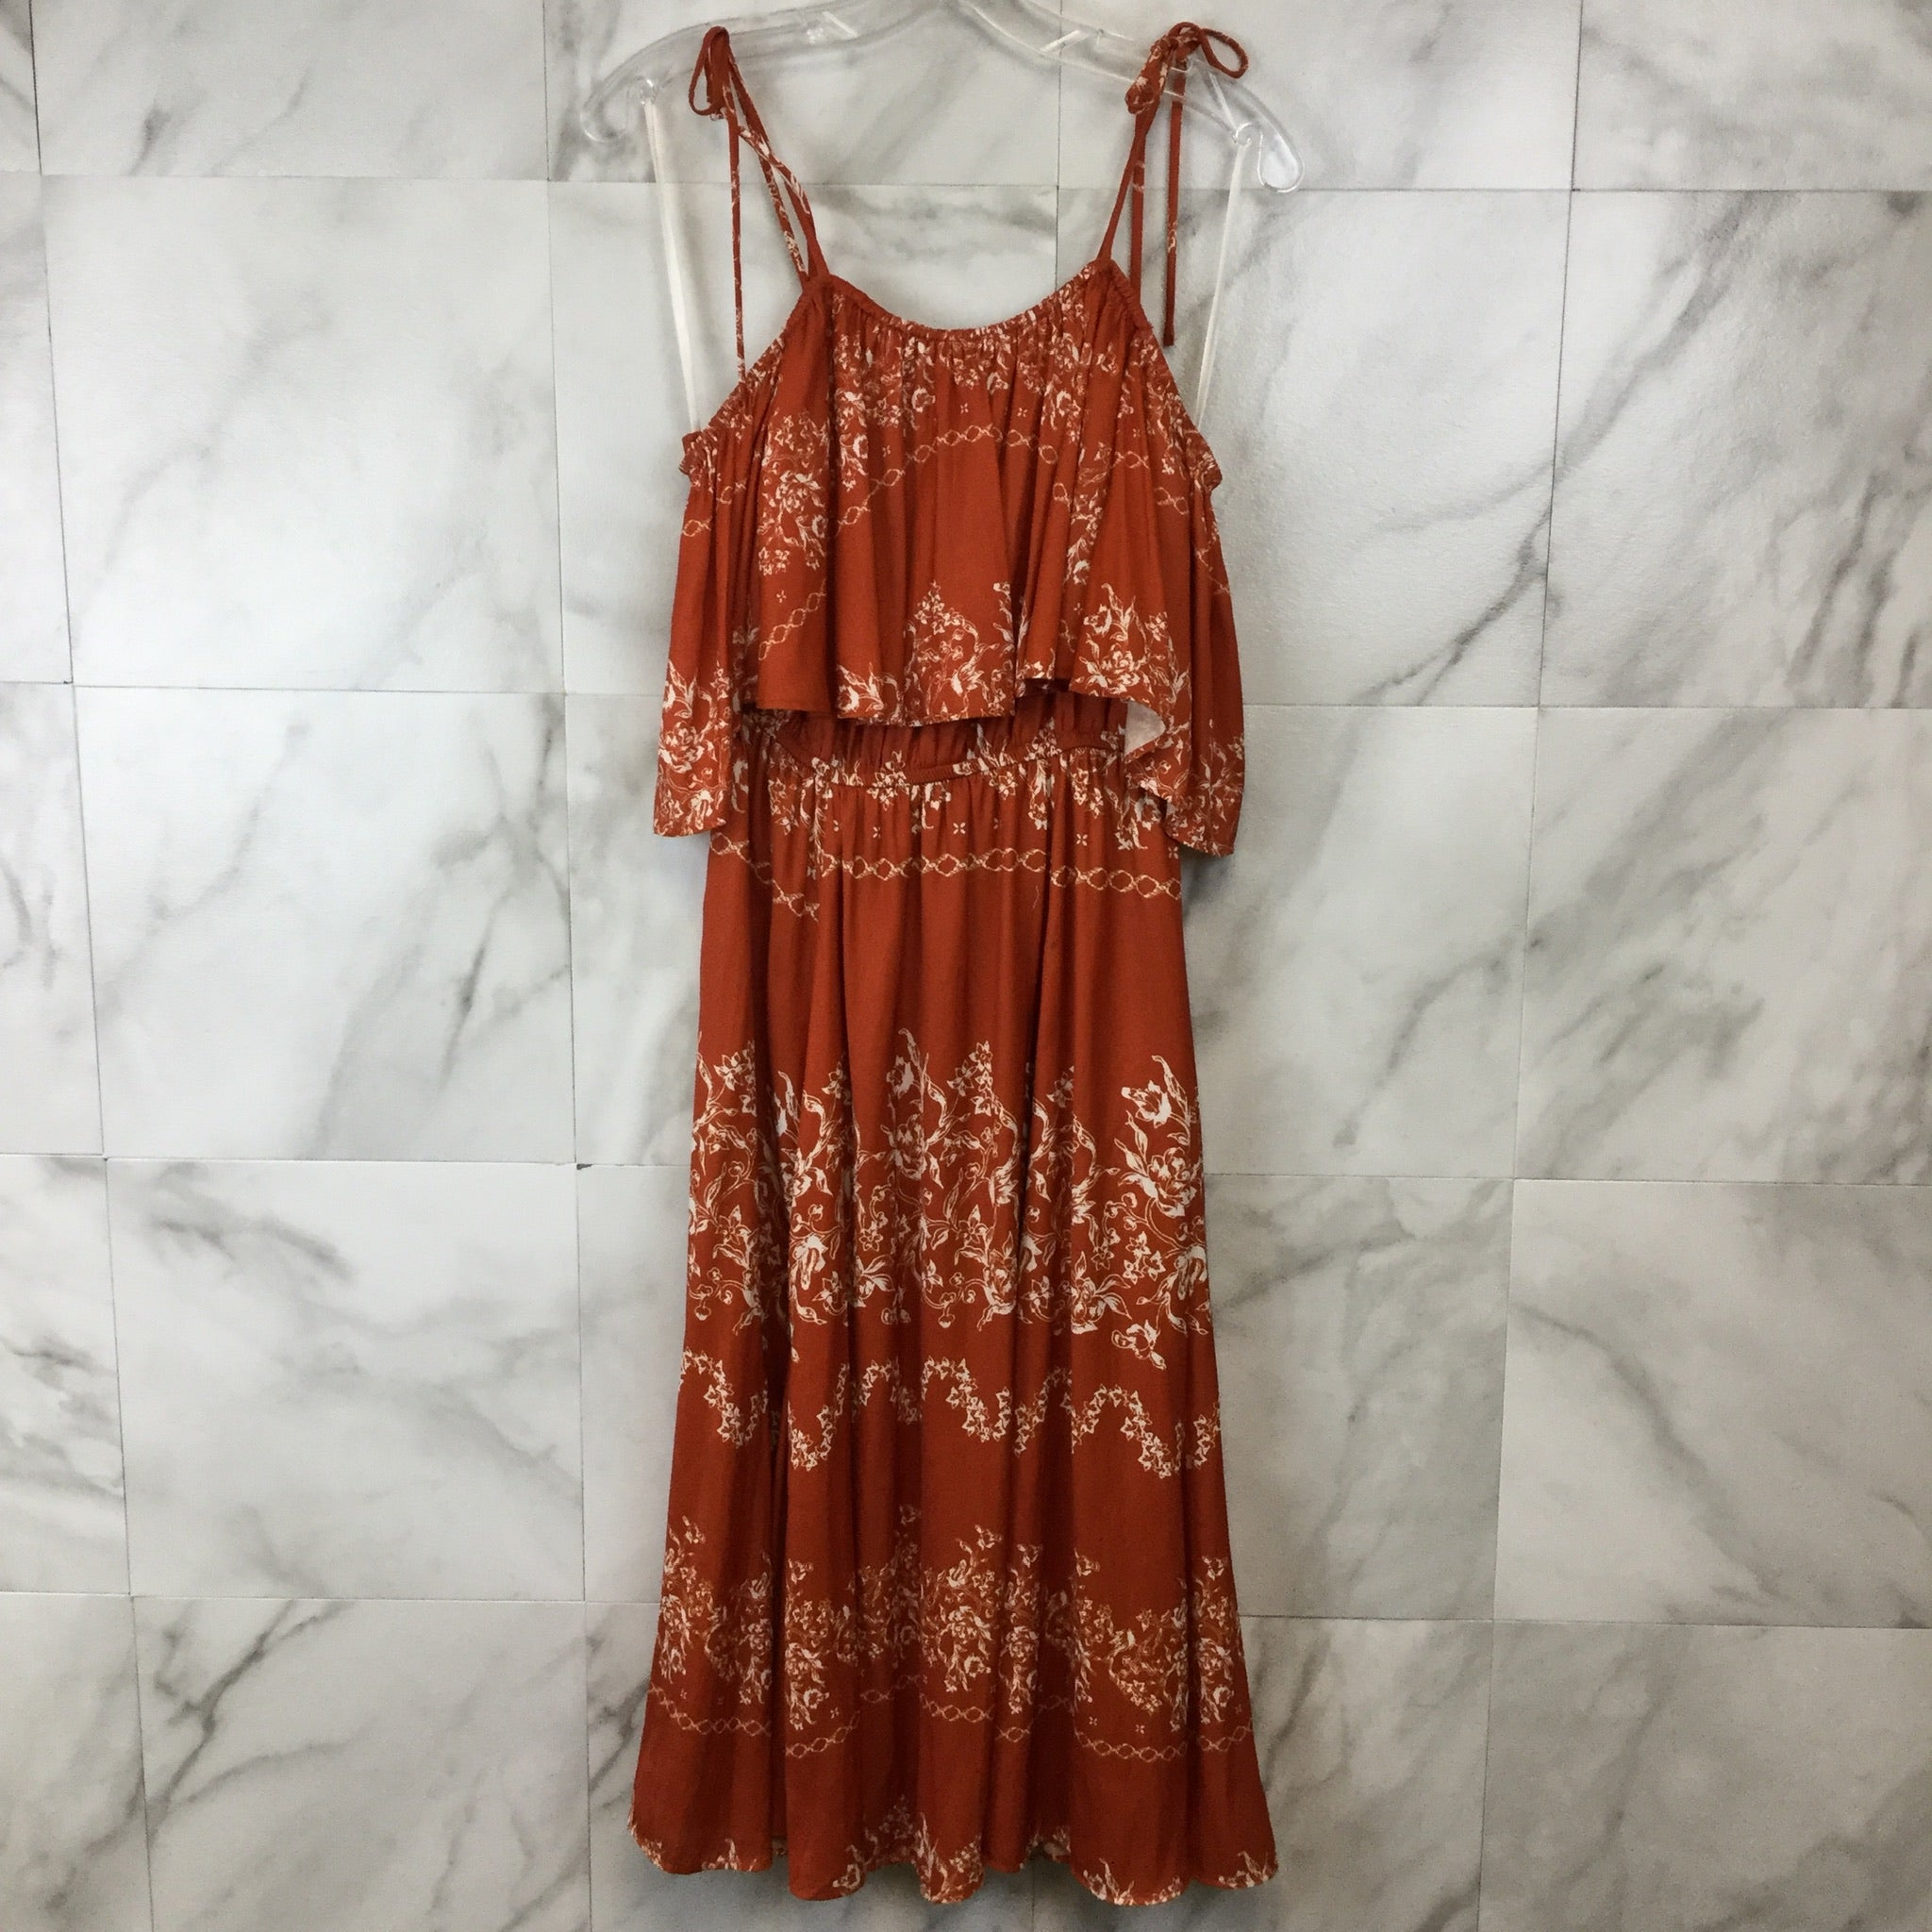 Tularosa Jacqui Dress - size M